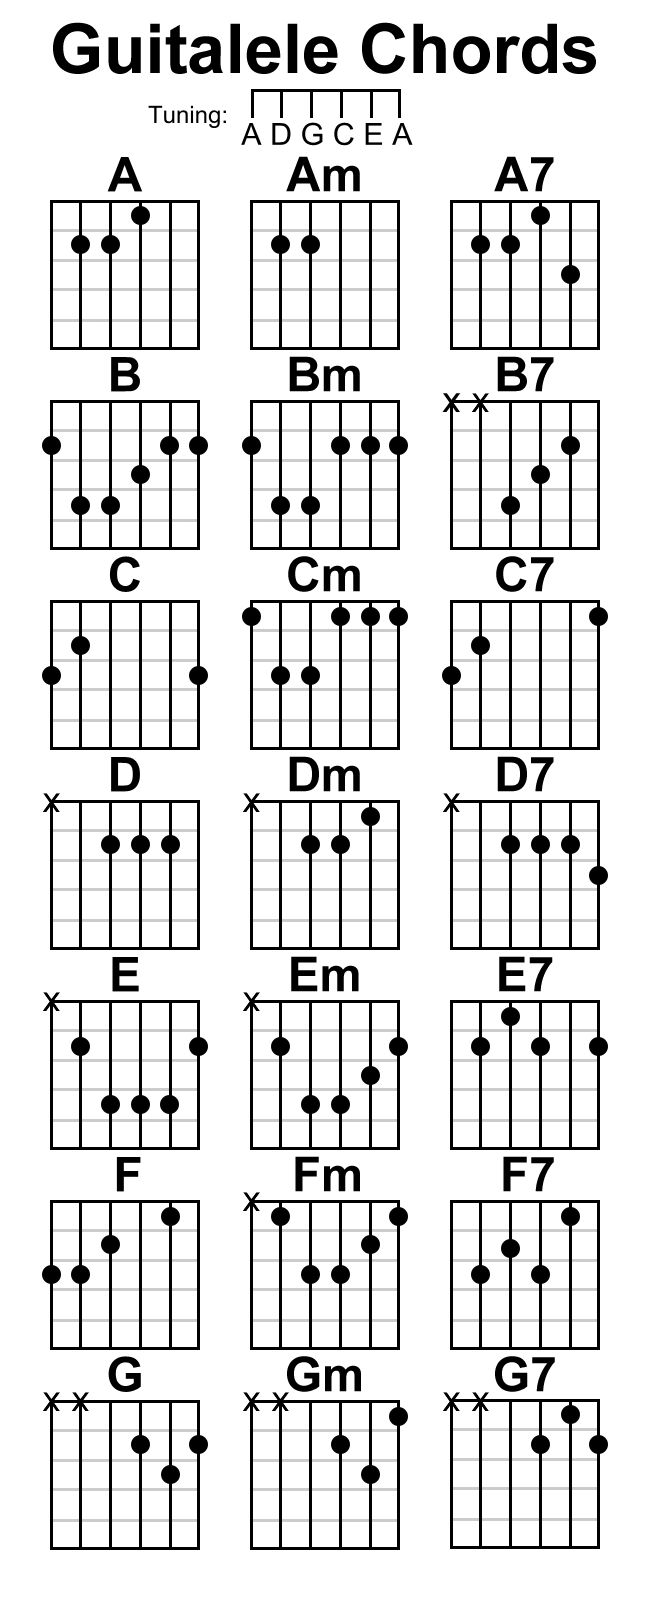 53 best guitalele stuff images on pinterest acoustic guitars guitalele chord chart by stijnart hexwebz Images